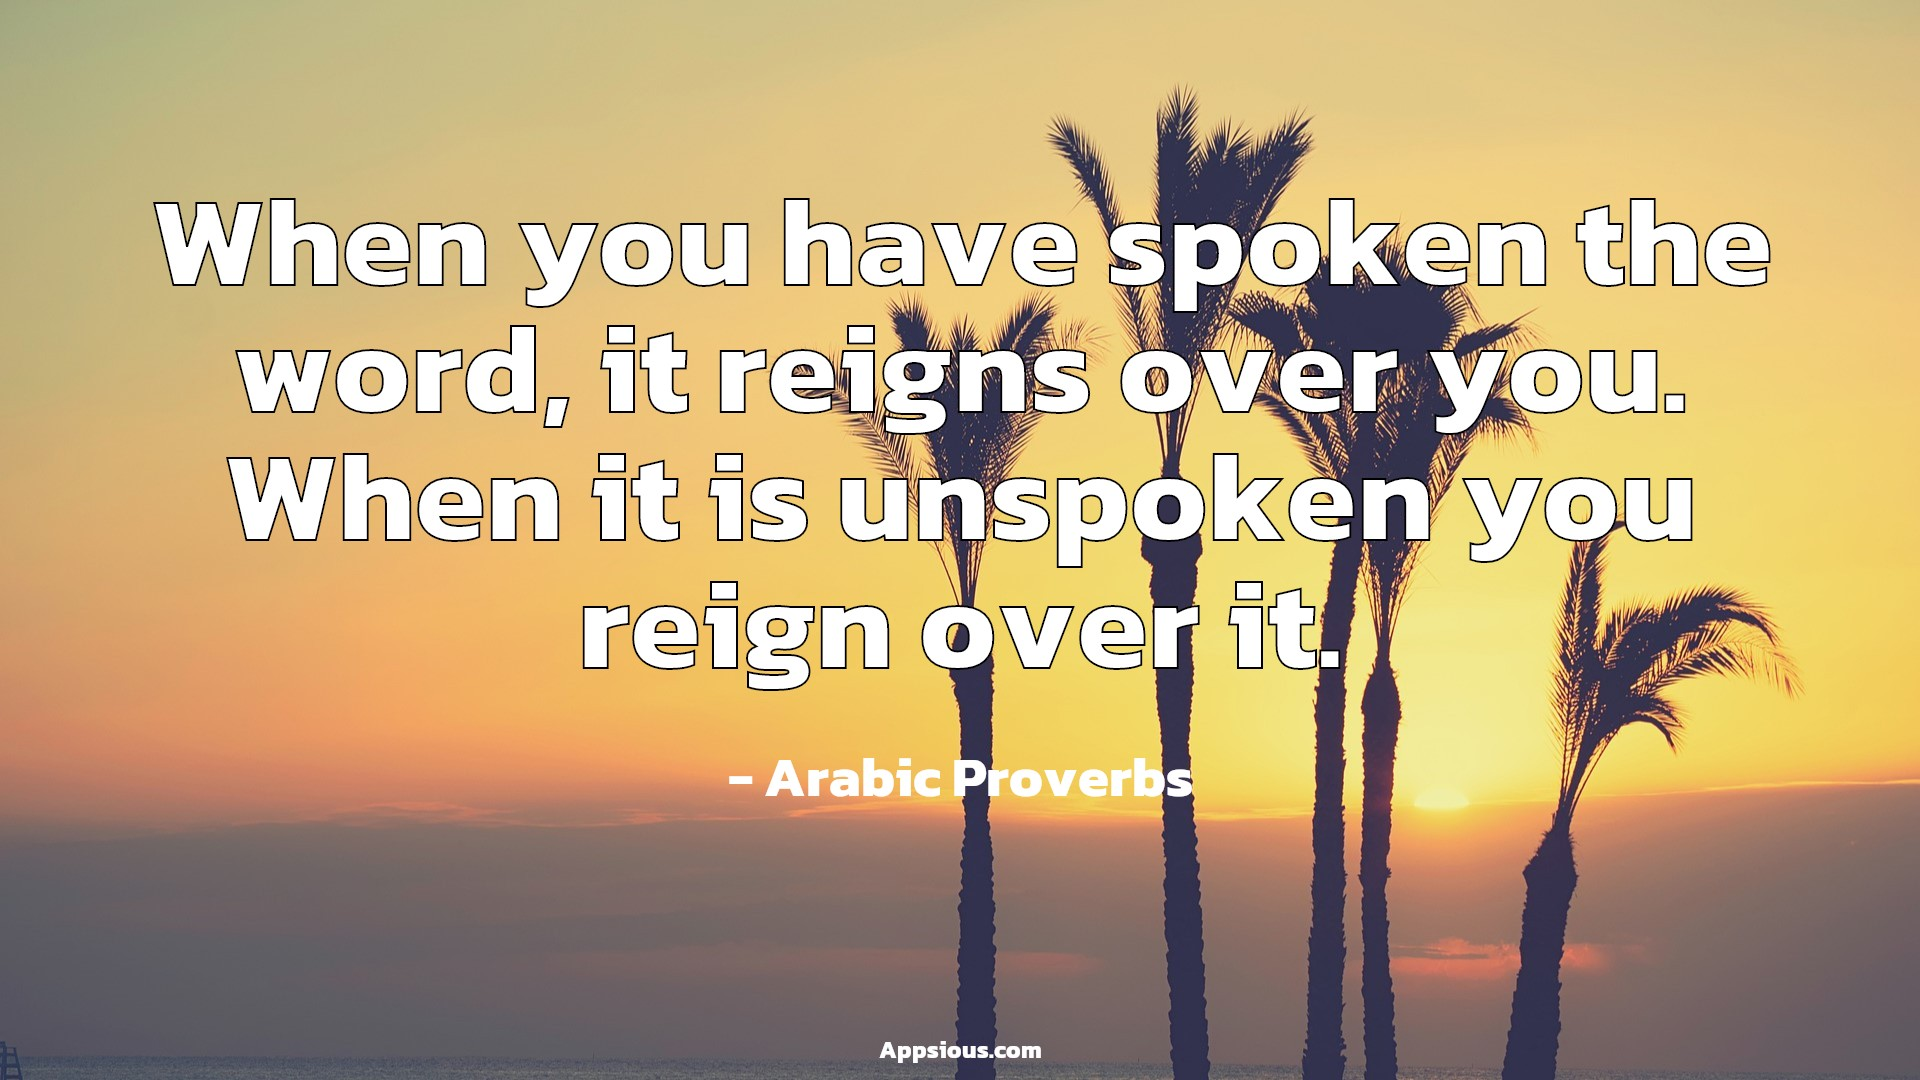 When you have spoken the word, it reigns over you. When it is unspoken you reign over it.